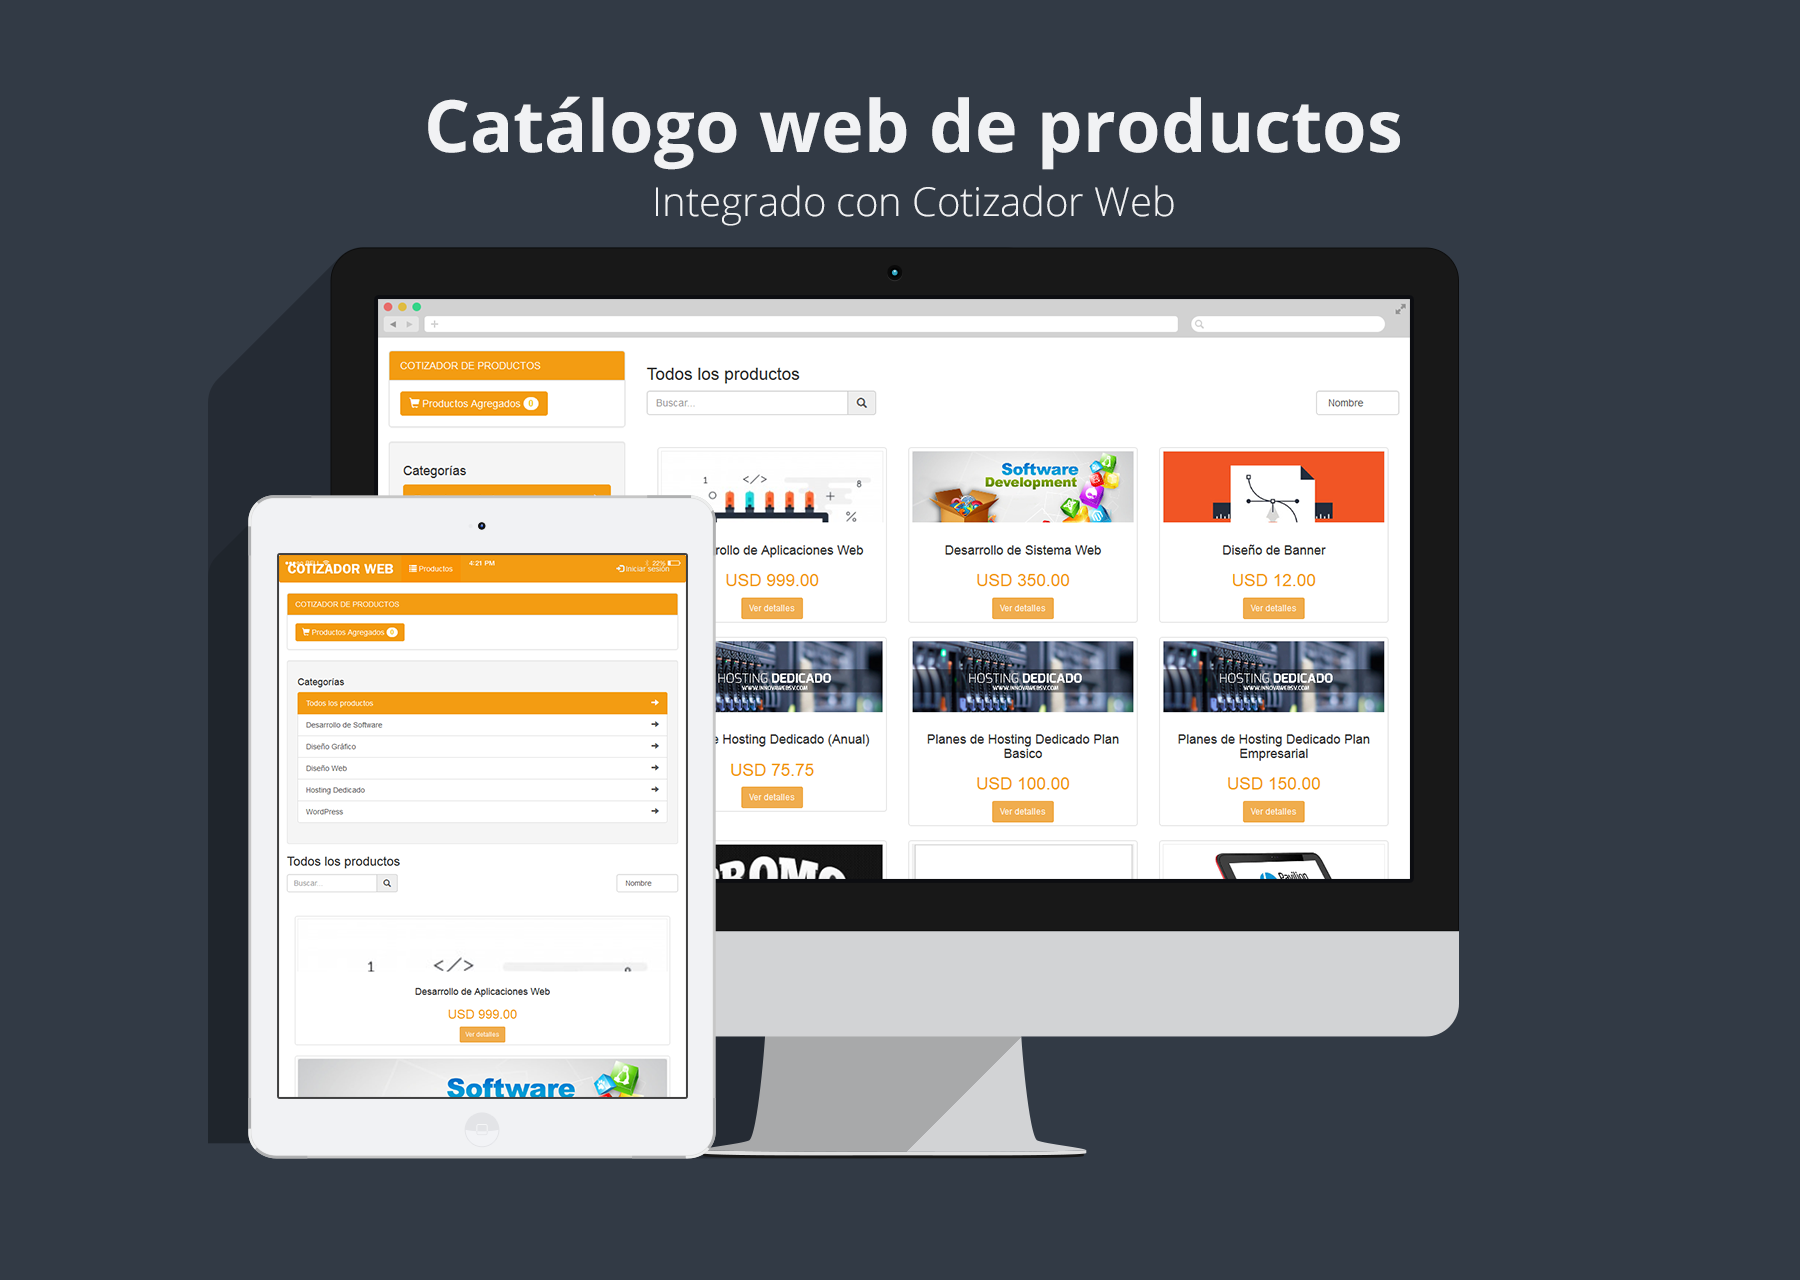 catalogo web de productos